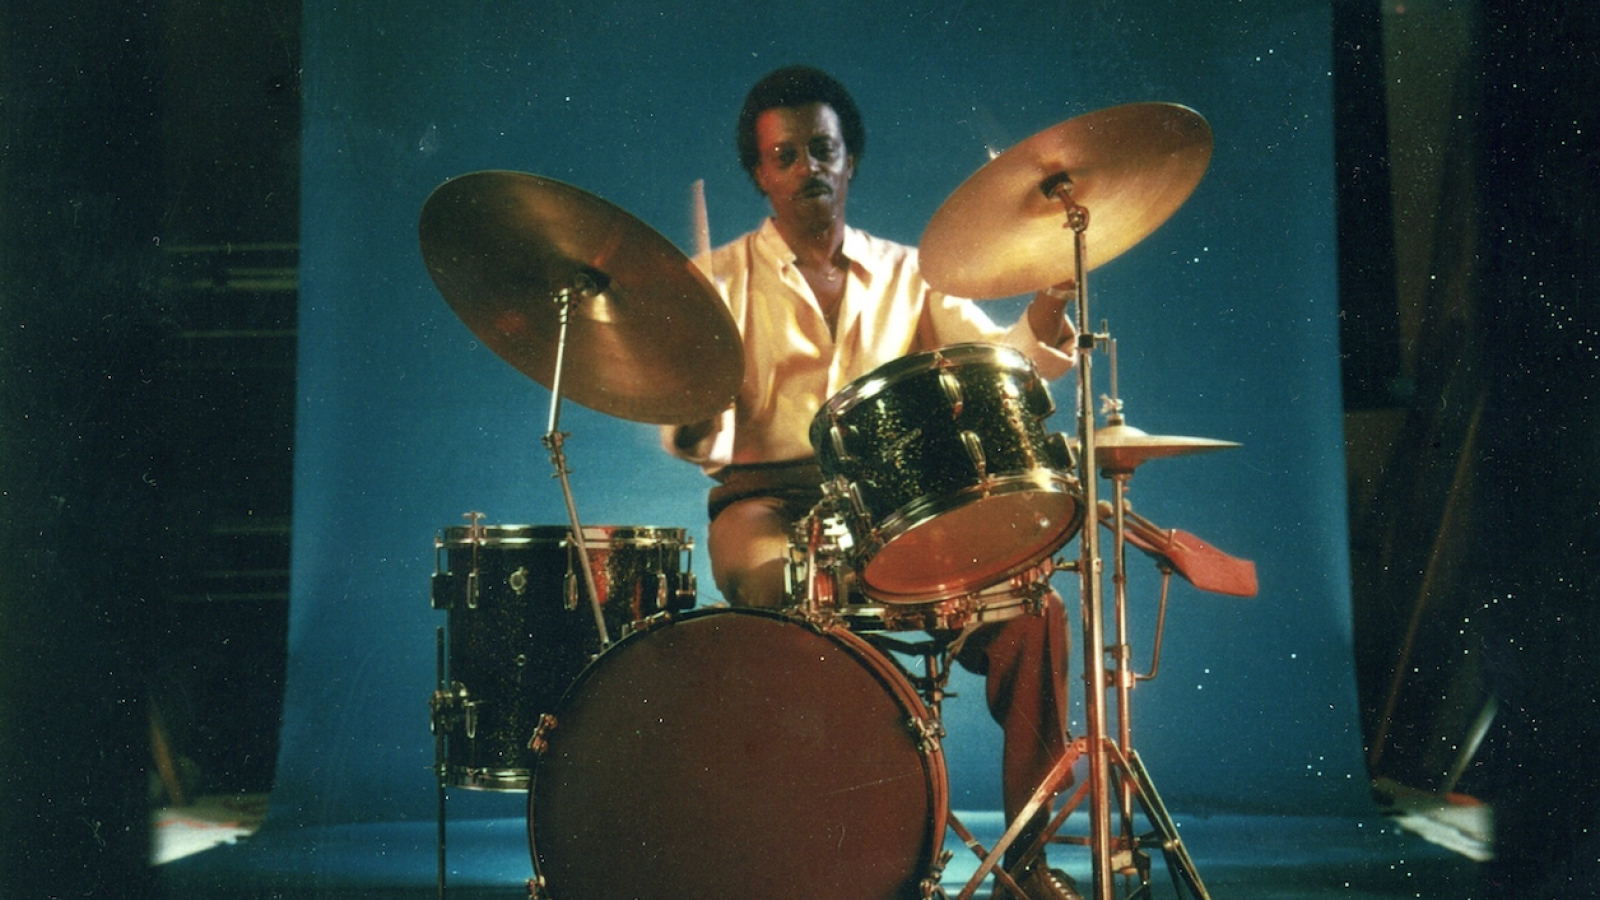 Young Philip Paul at drum set